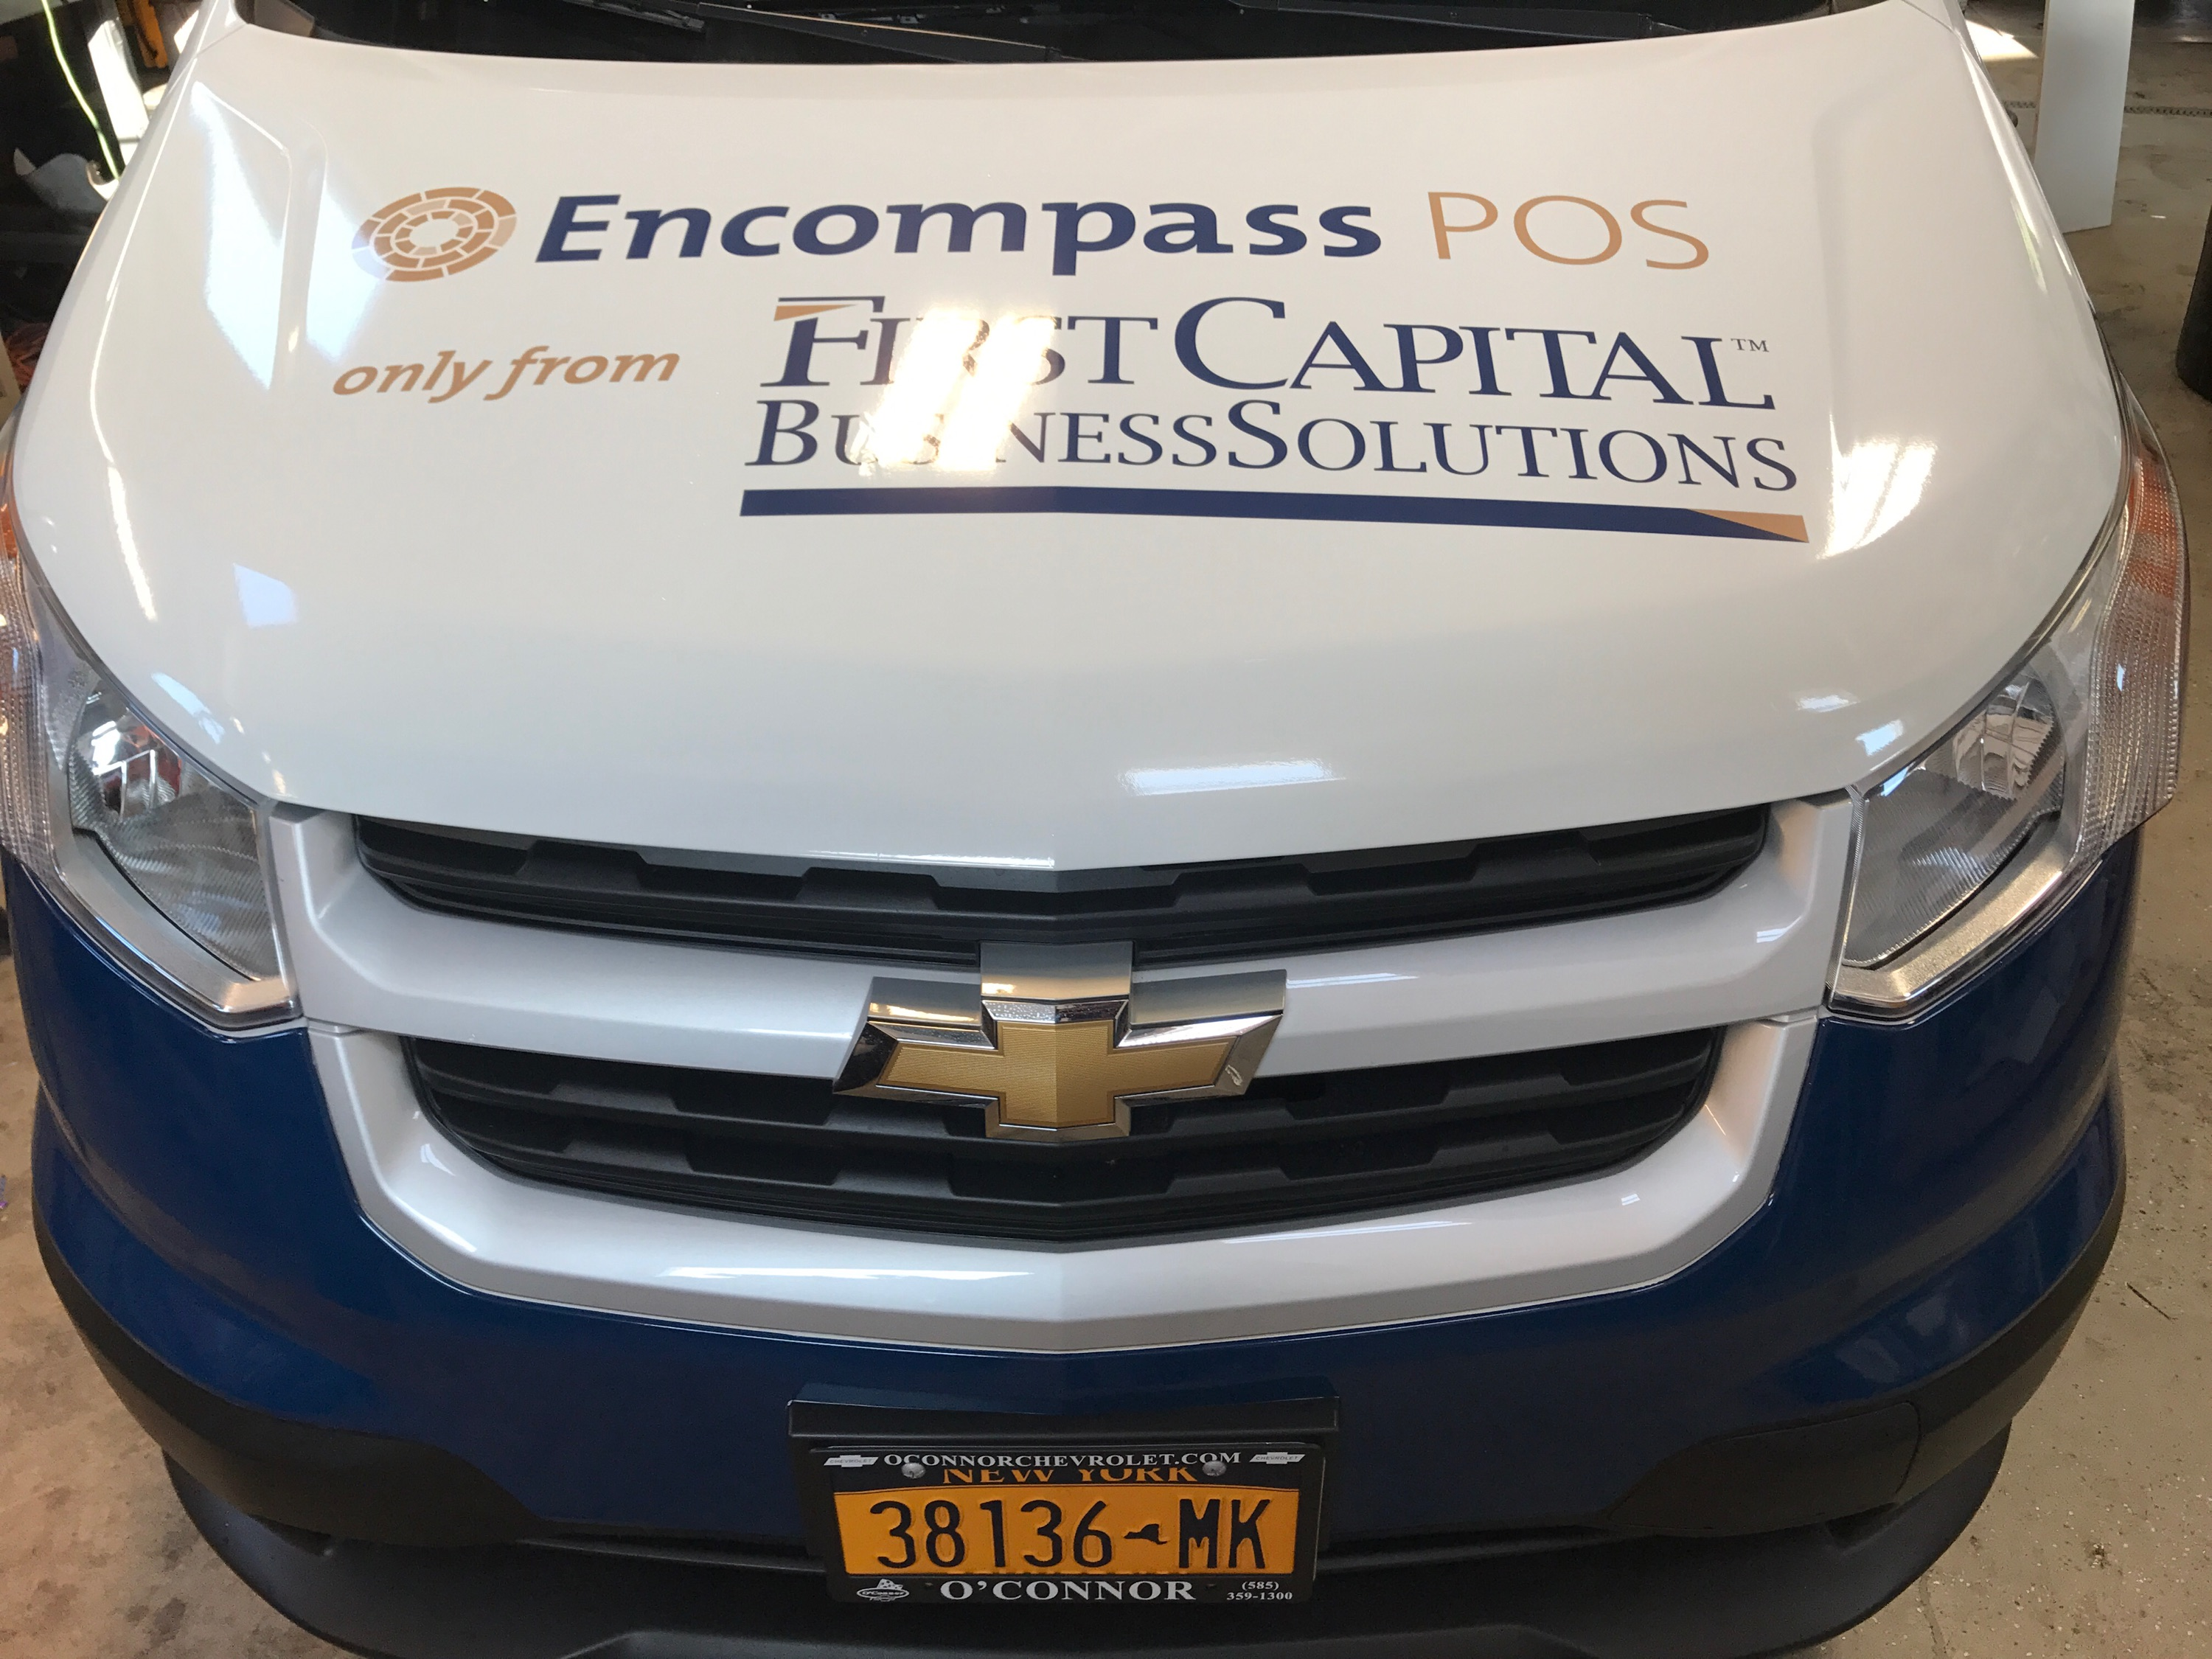 First Capital Vehicle Wrap